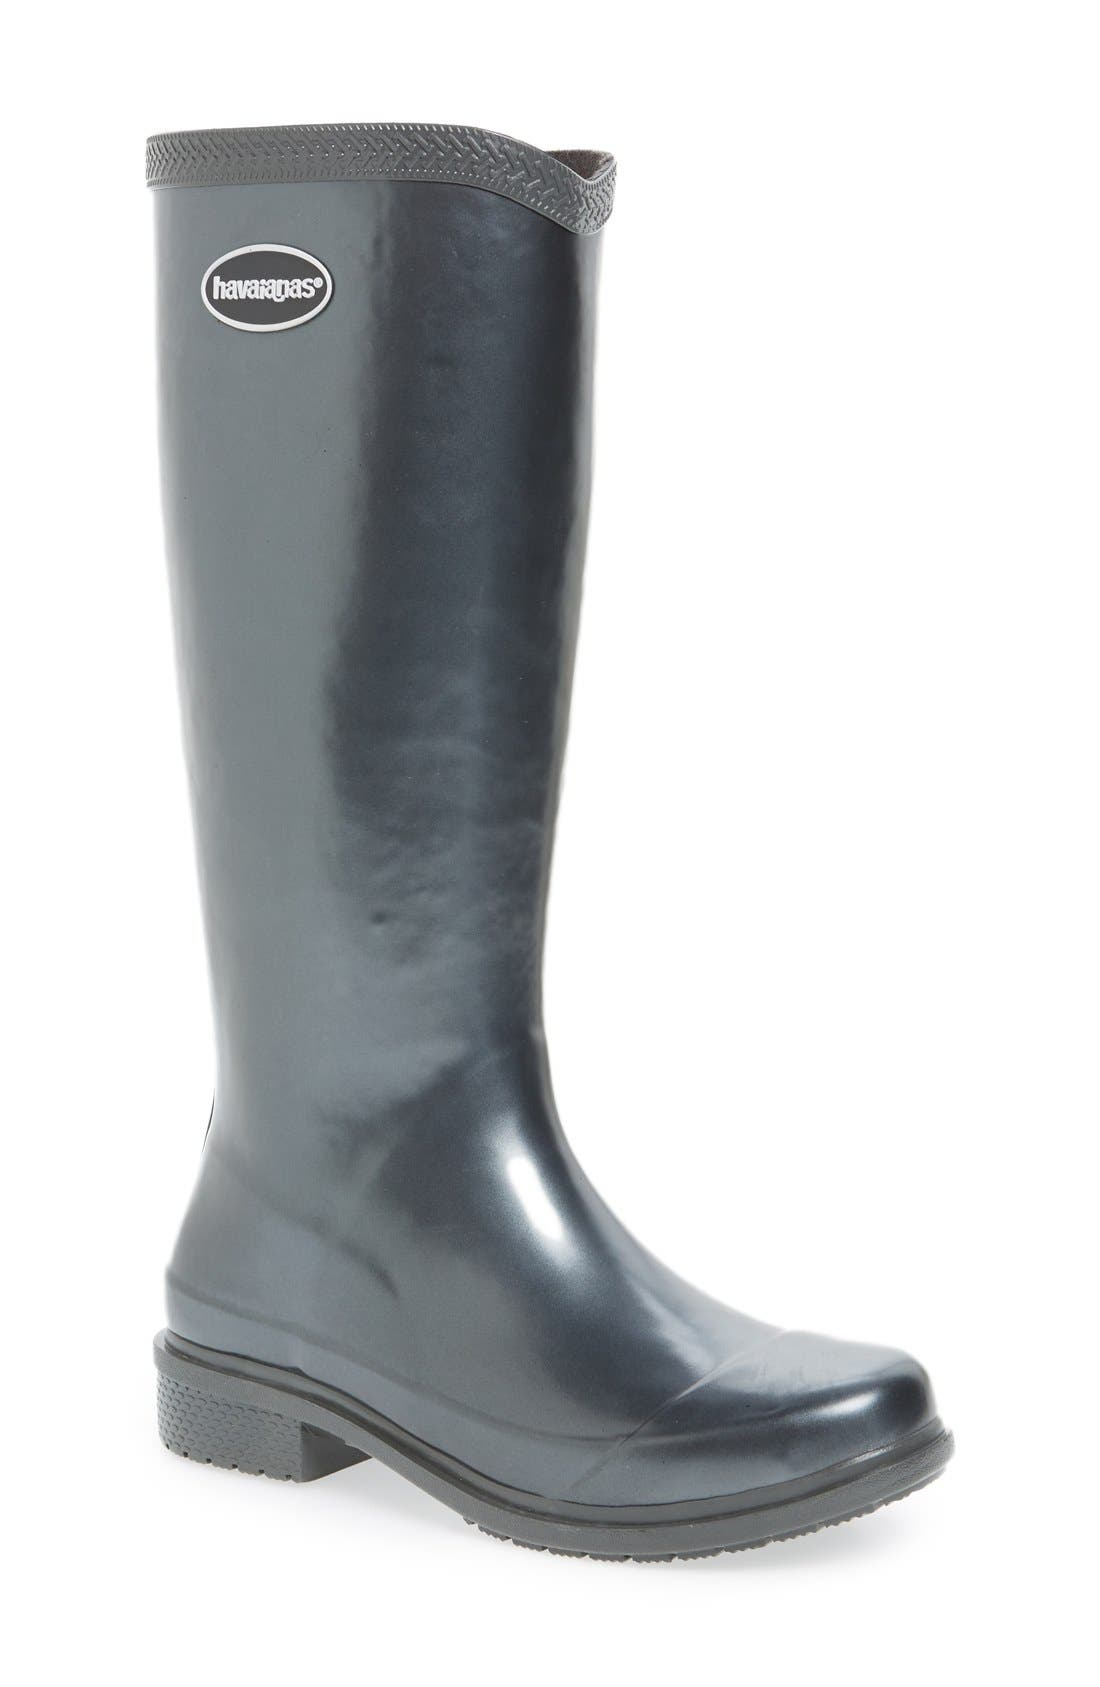 Main Image - Havaianas 'Galochas Hi Metallic' Waterproof Rain Boot (Women)